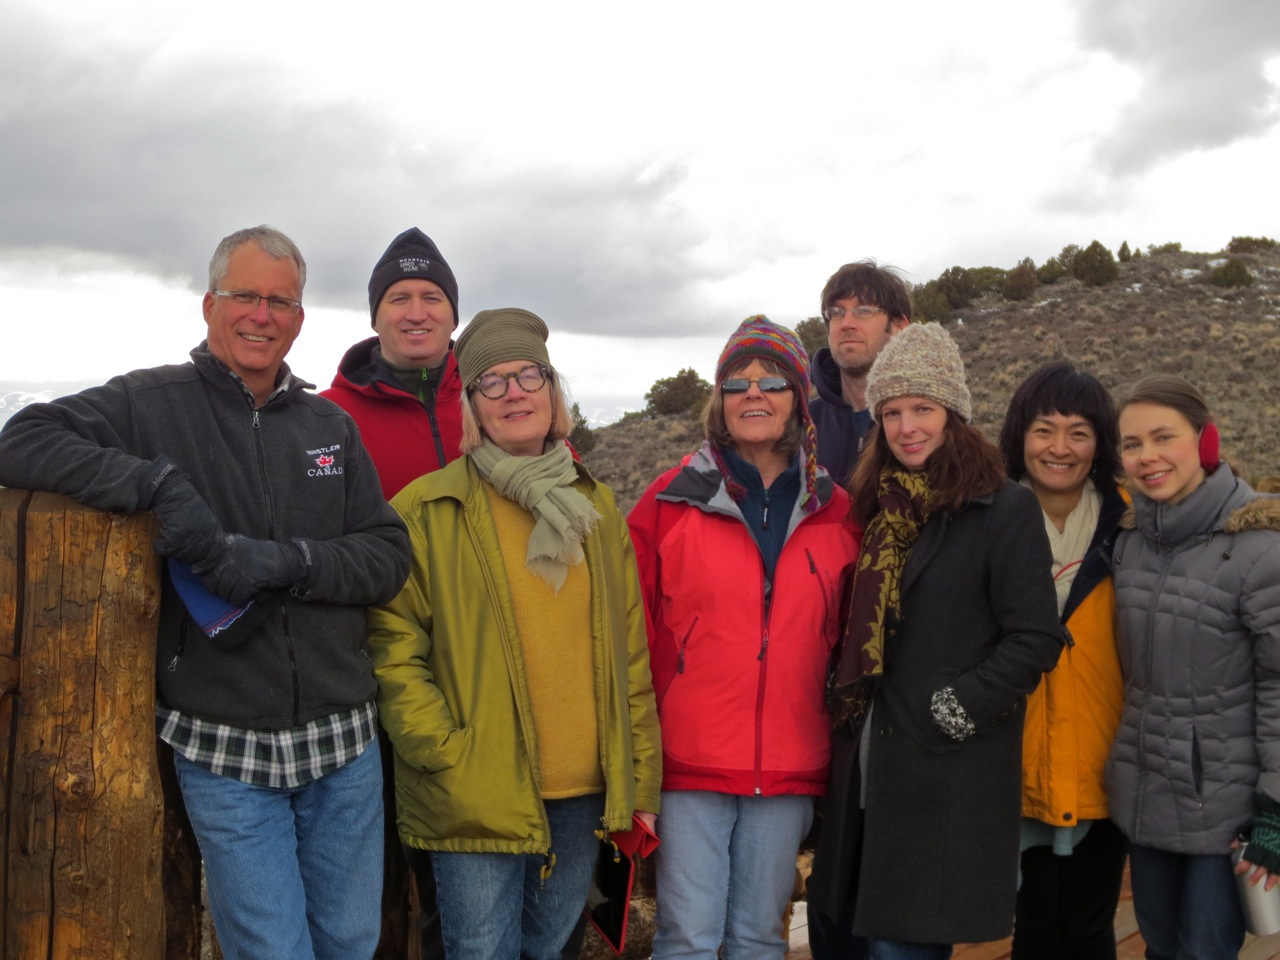 The artists in residence at Brush Creek Foundation for the Arts in Saratoga, Wyoming. From left to right: Visual artist Roger Feldman, composer Jeffrey Roberts, painter Anne Connell, poet Kate Kingston, interdisciplinary artist Corwin Levi, writer Michelle Aldredge, and composer Eun Young Lee (Photo by Beth Nelson)